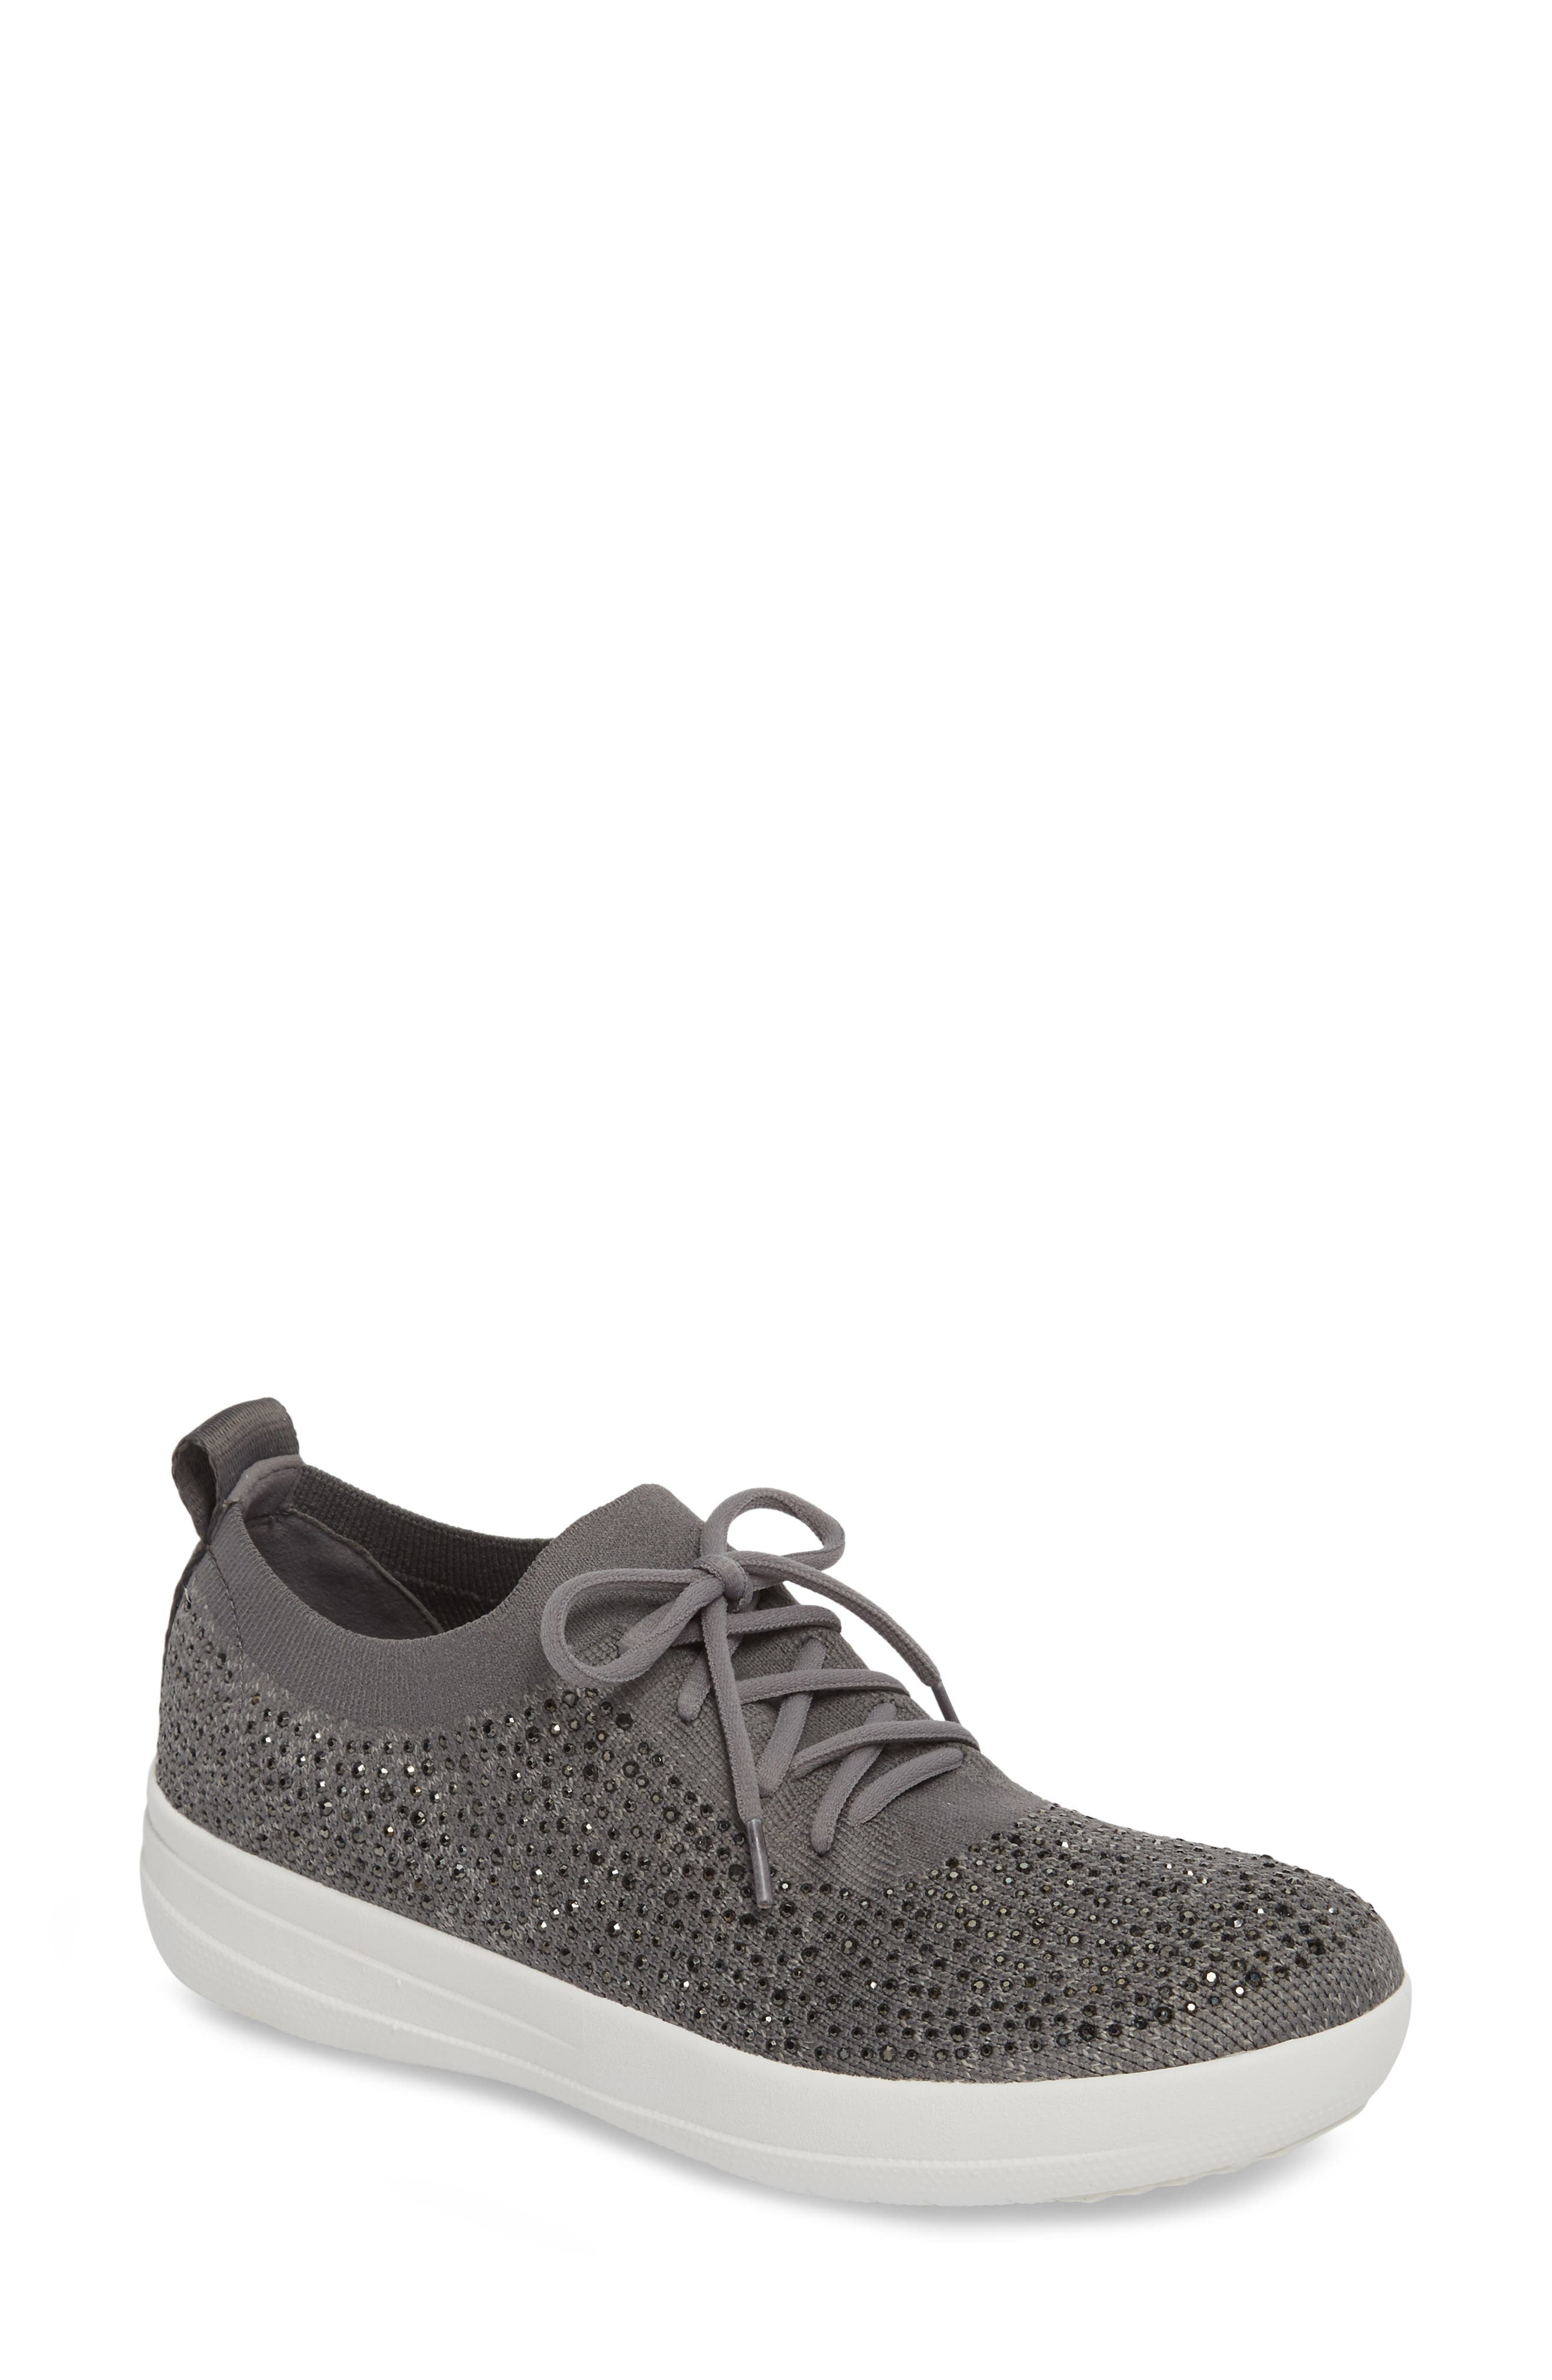 FITFLOP Uberknit<sup>™</sup> F-Sporty Sneaker, Main, color, CHARCOAL/ DUSTY GREY